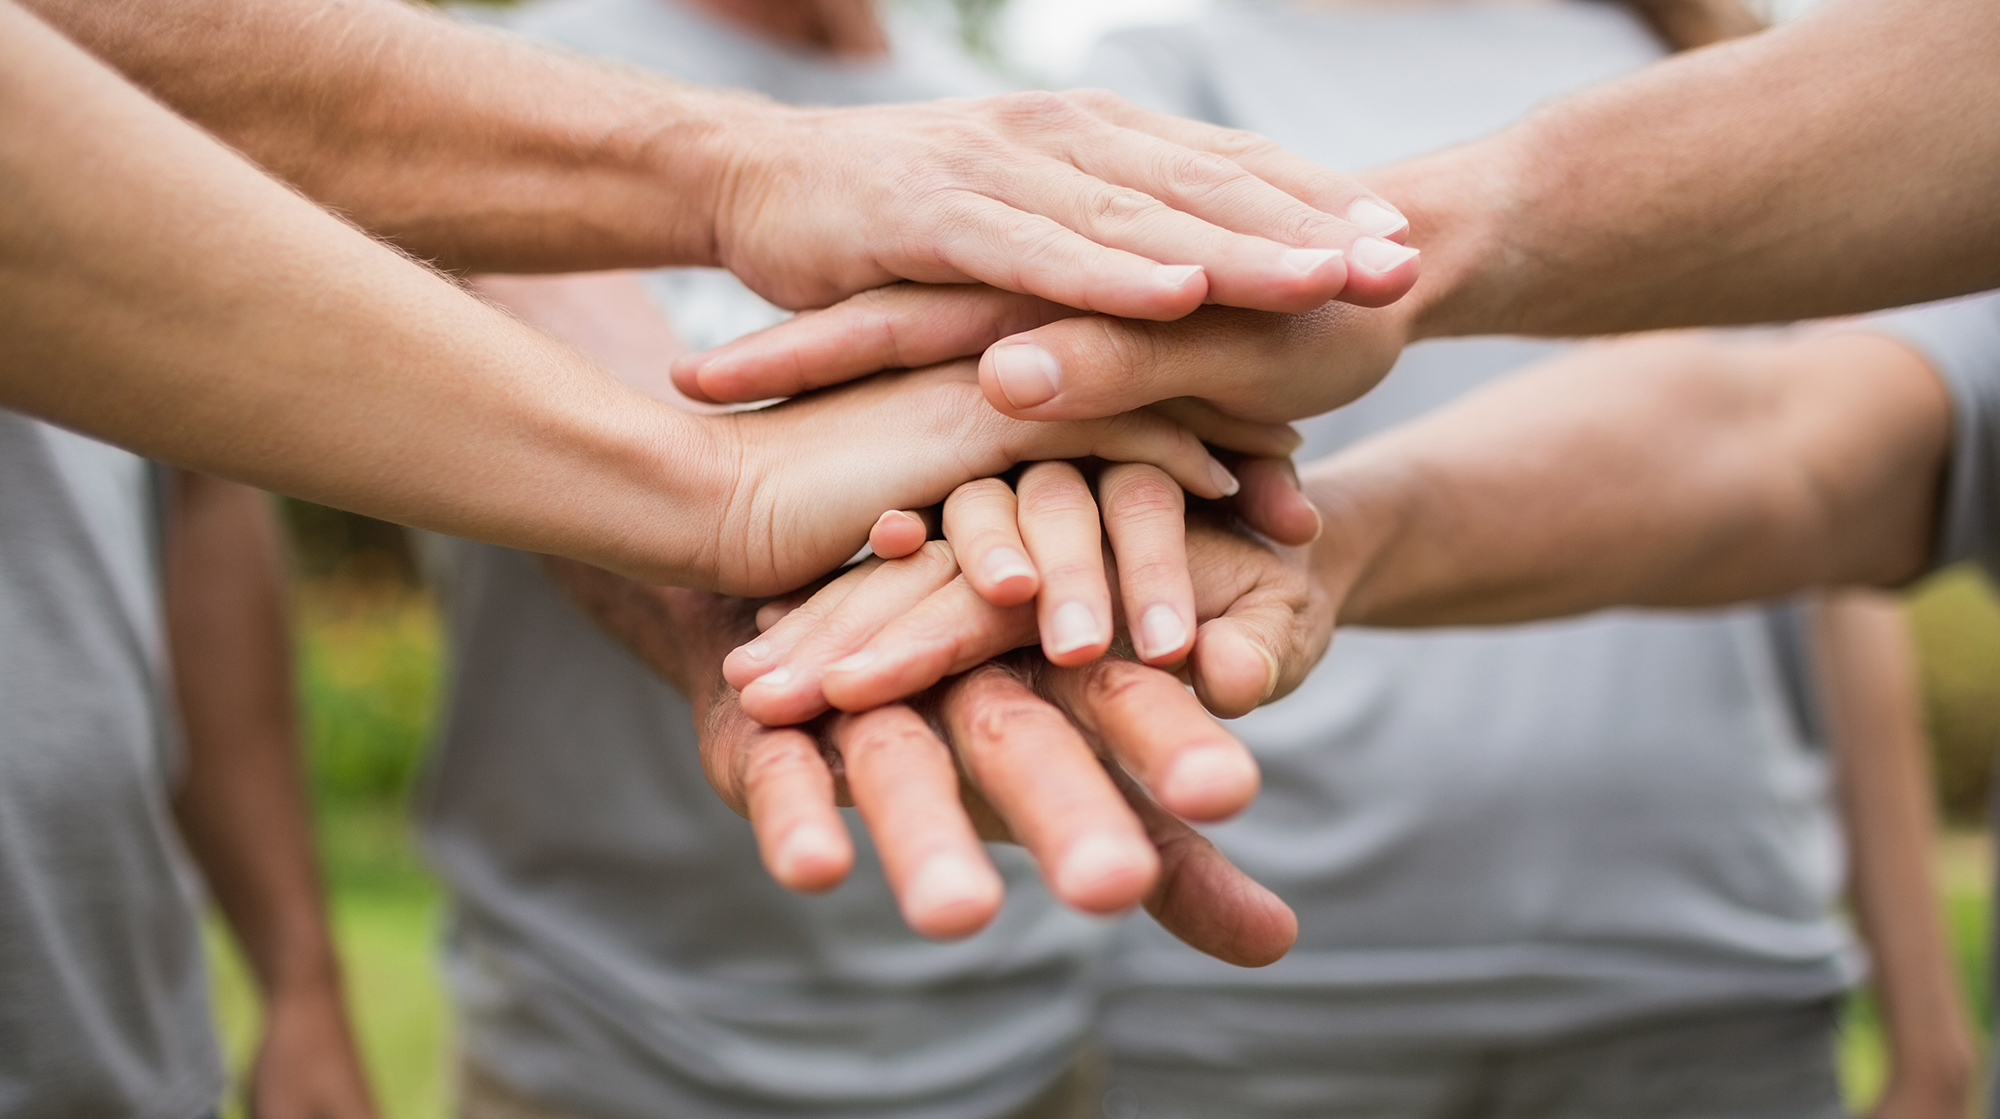 How you can make a difference by volunteering